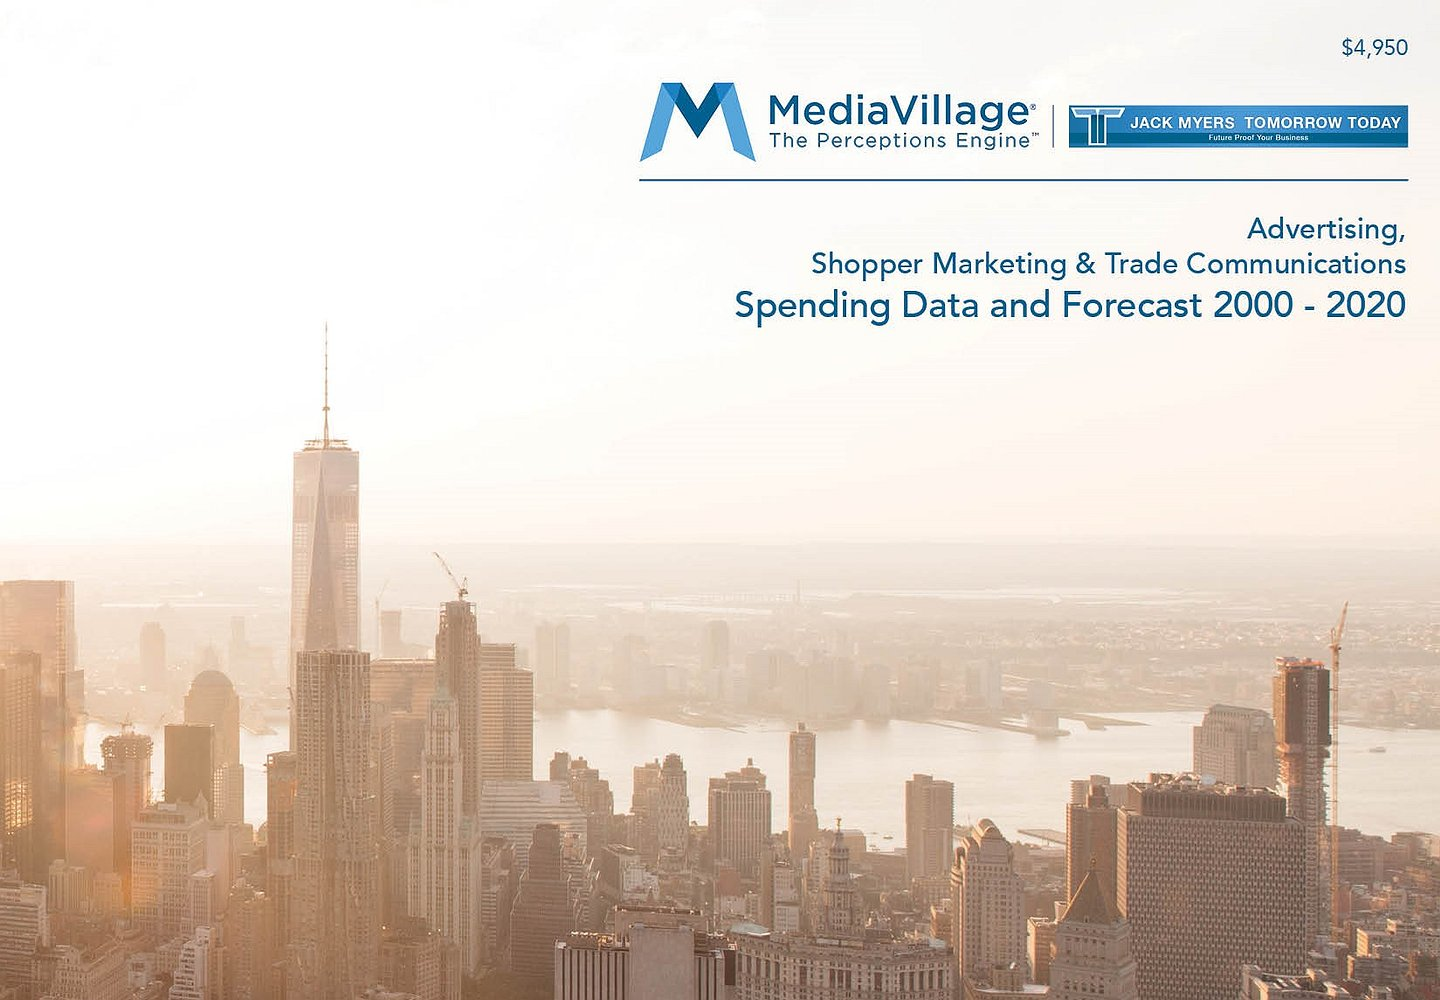 Download Today: Top Three Drivers for Digital TV Ad Spend Growth